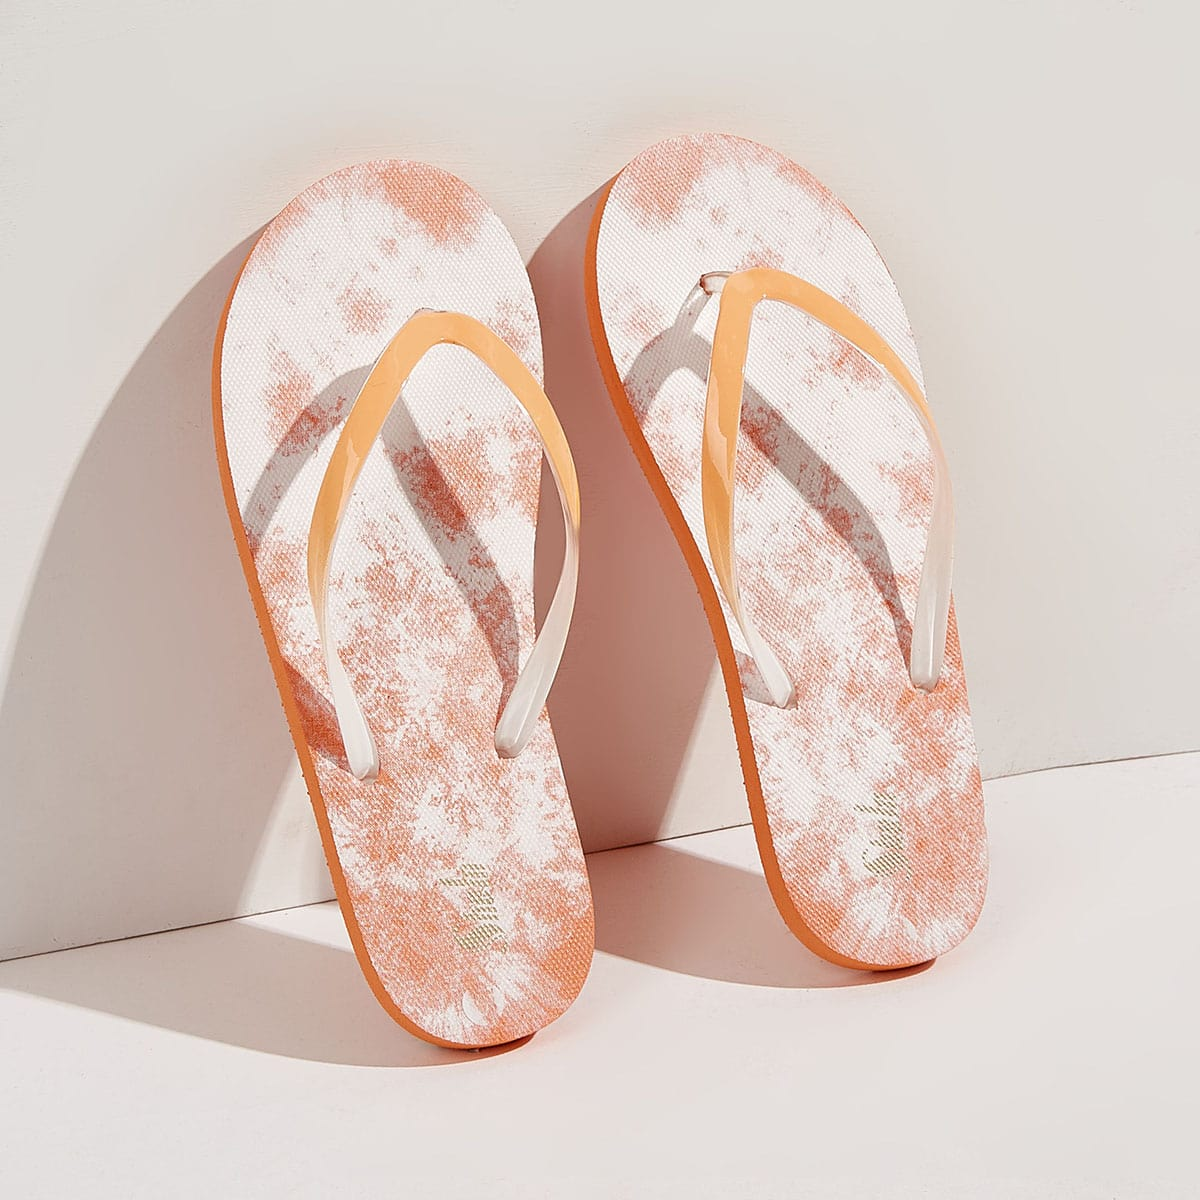 SHEIN Modieus Tie dye Slippers